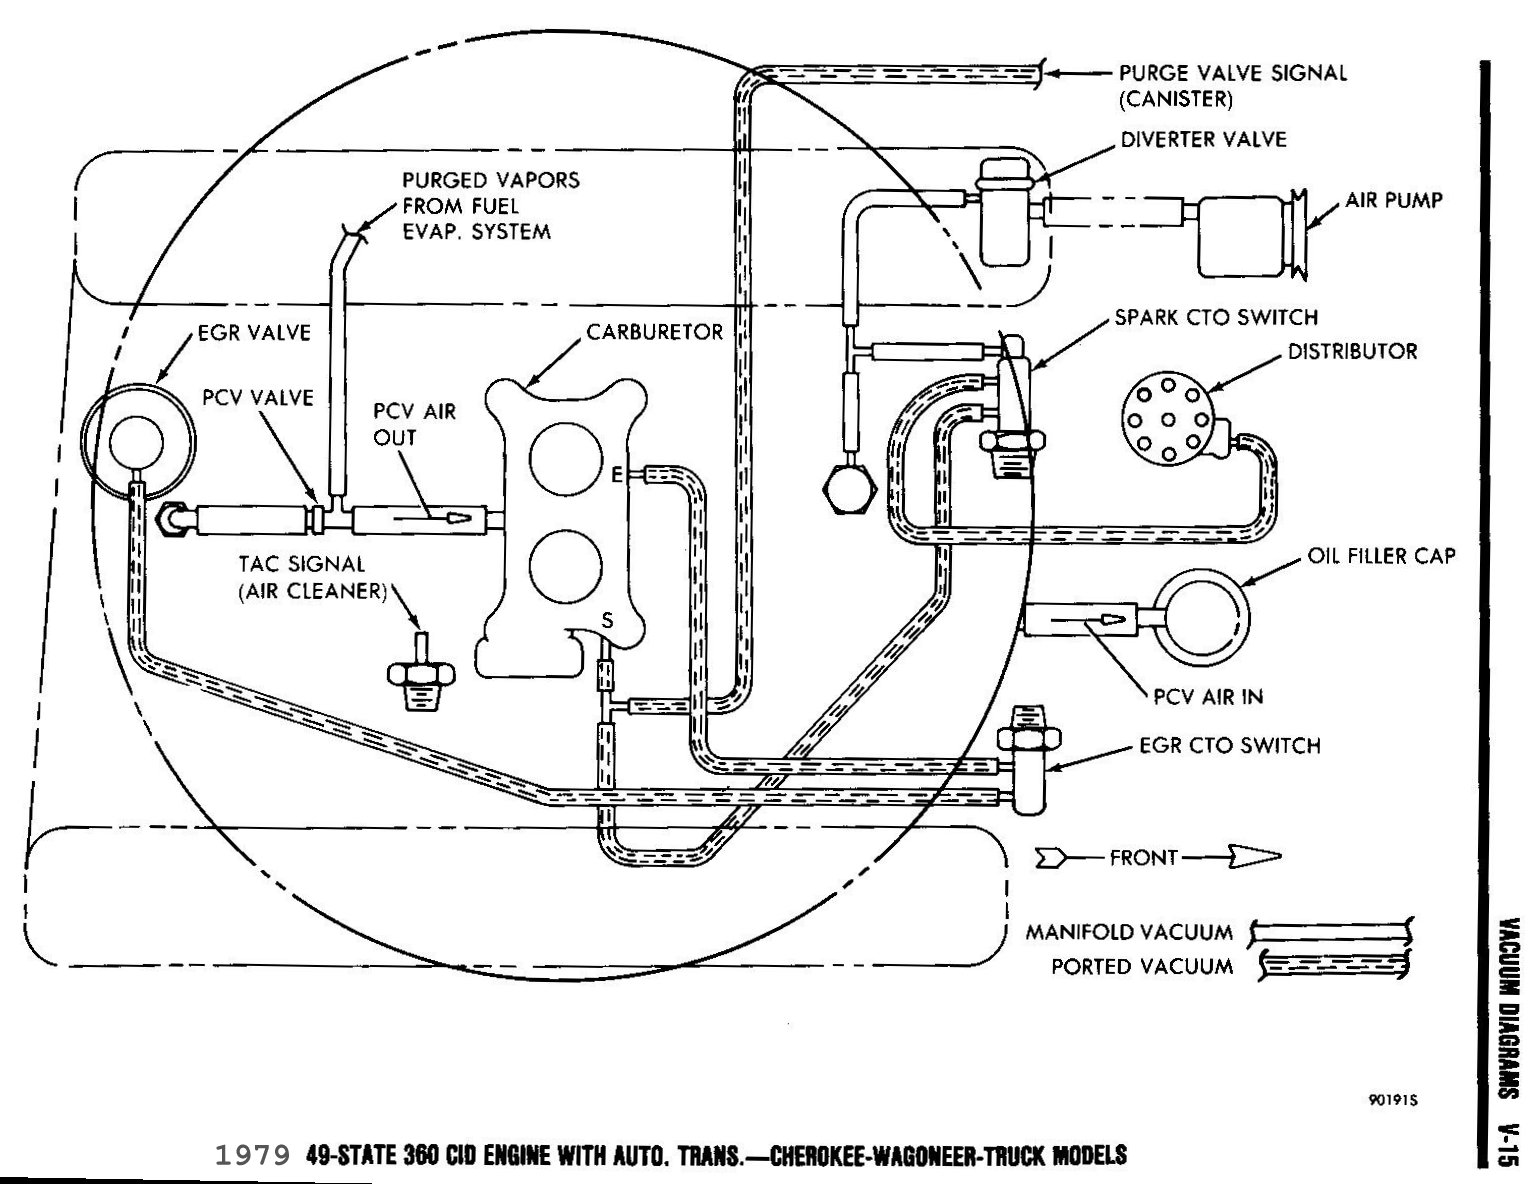 Jeep 40 Vacuum Diagram 1980 Reinvent Your Wiring 97 Wrangler Engine Tom Oljeep Collins Fsj Layout Page Rh Com 1994 4 0 L Evap System 1998 V6